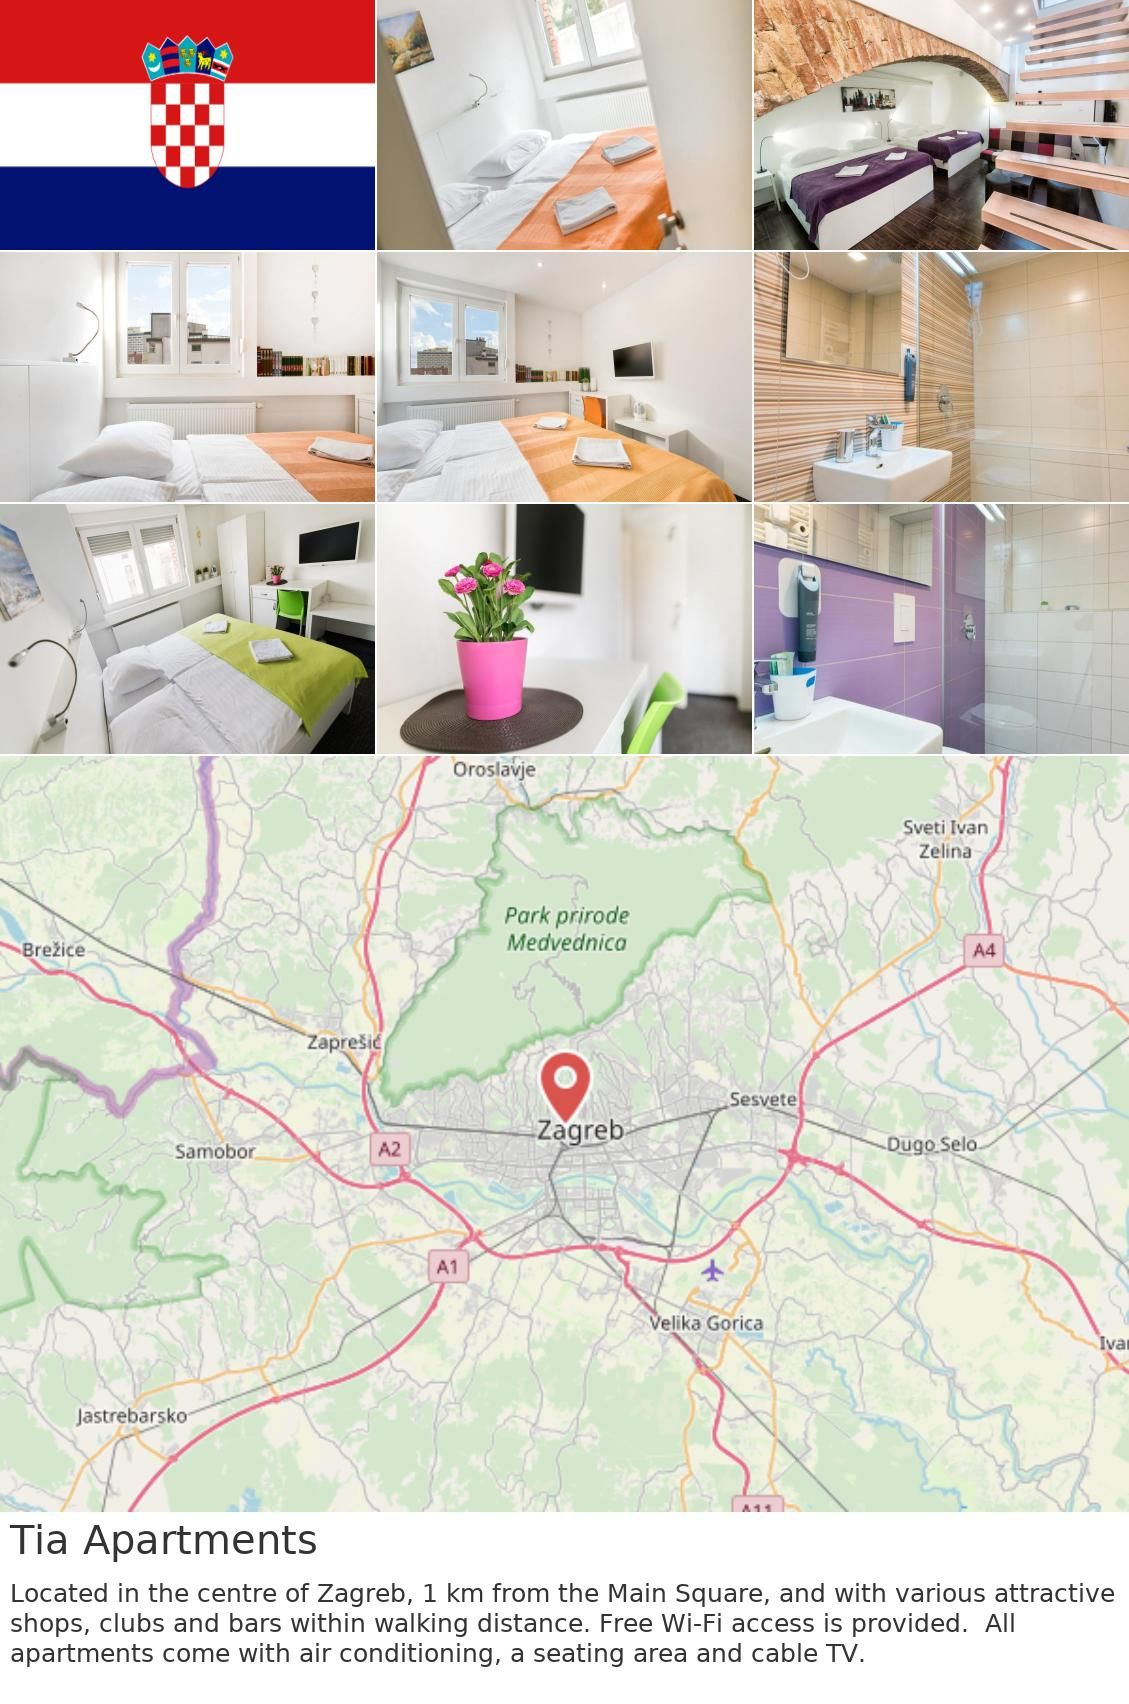 Europe Croatia Zagreb Tia Apartments Located In The Centre Of Zagreb 1 Km From The Main Square And With Various Attractive Shops Clubs And Bars Within Wa